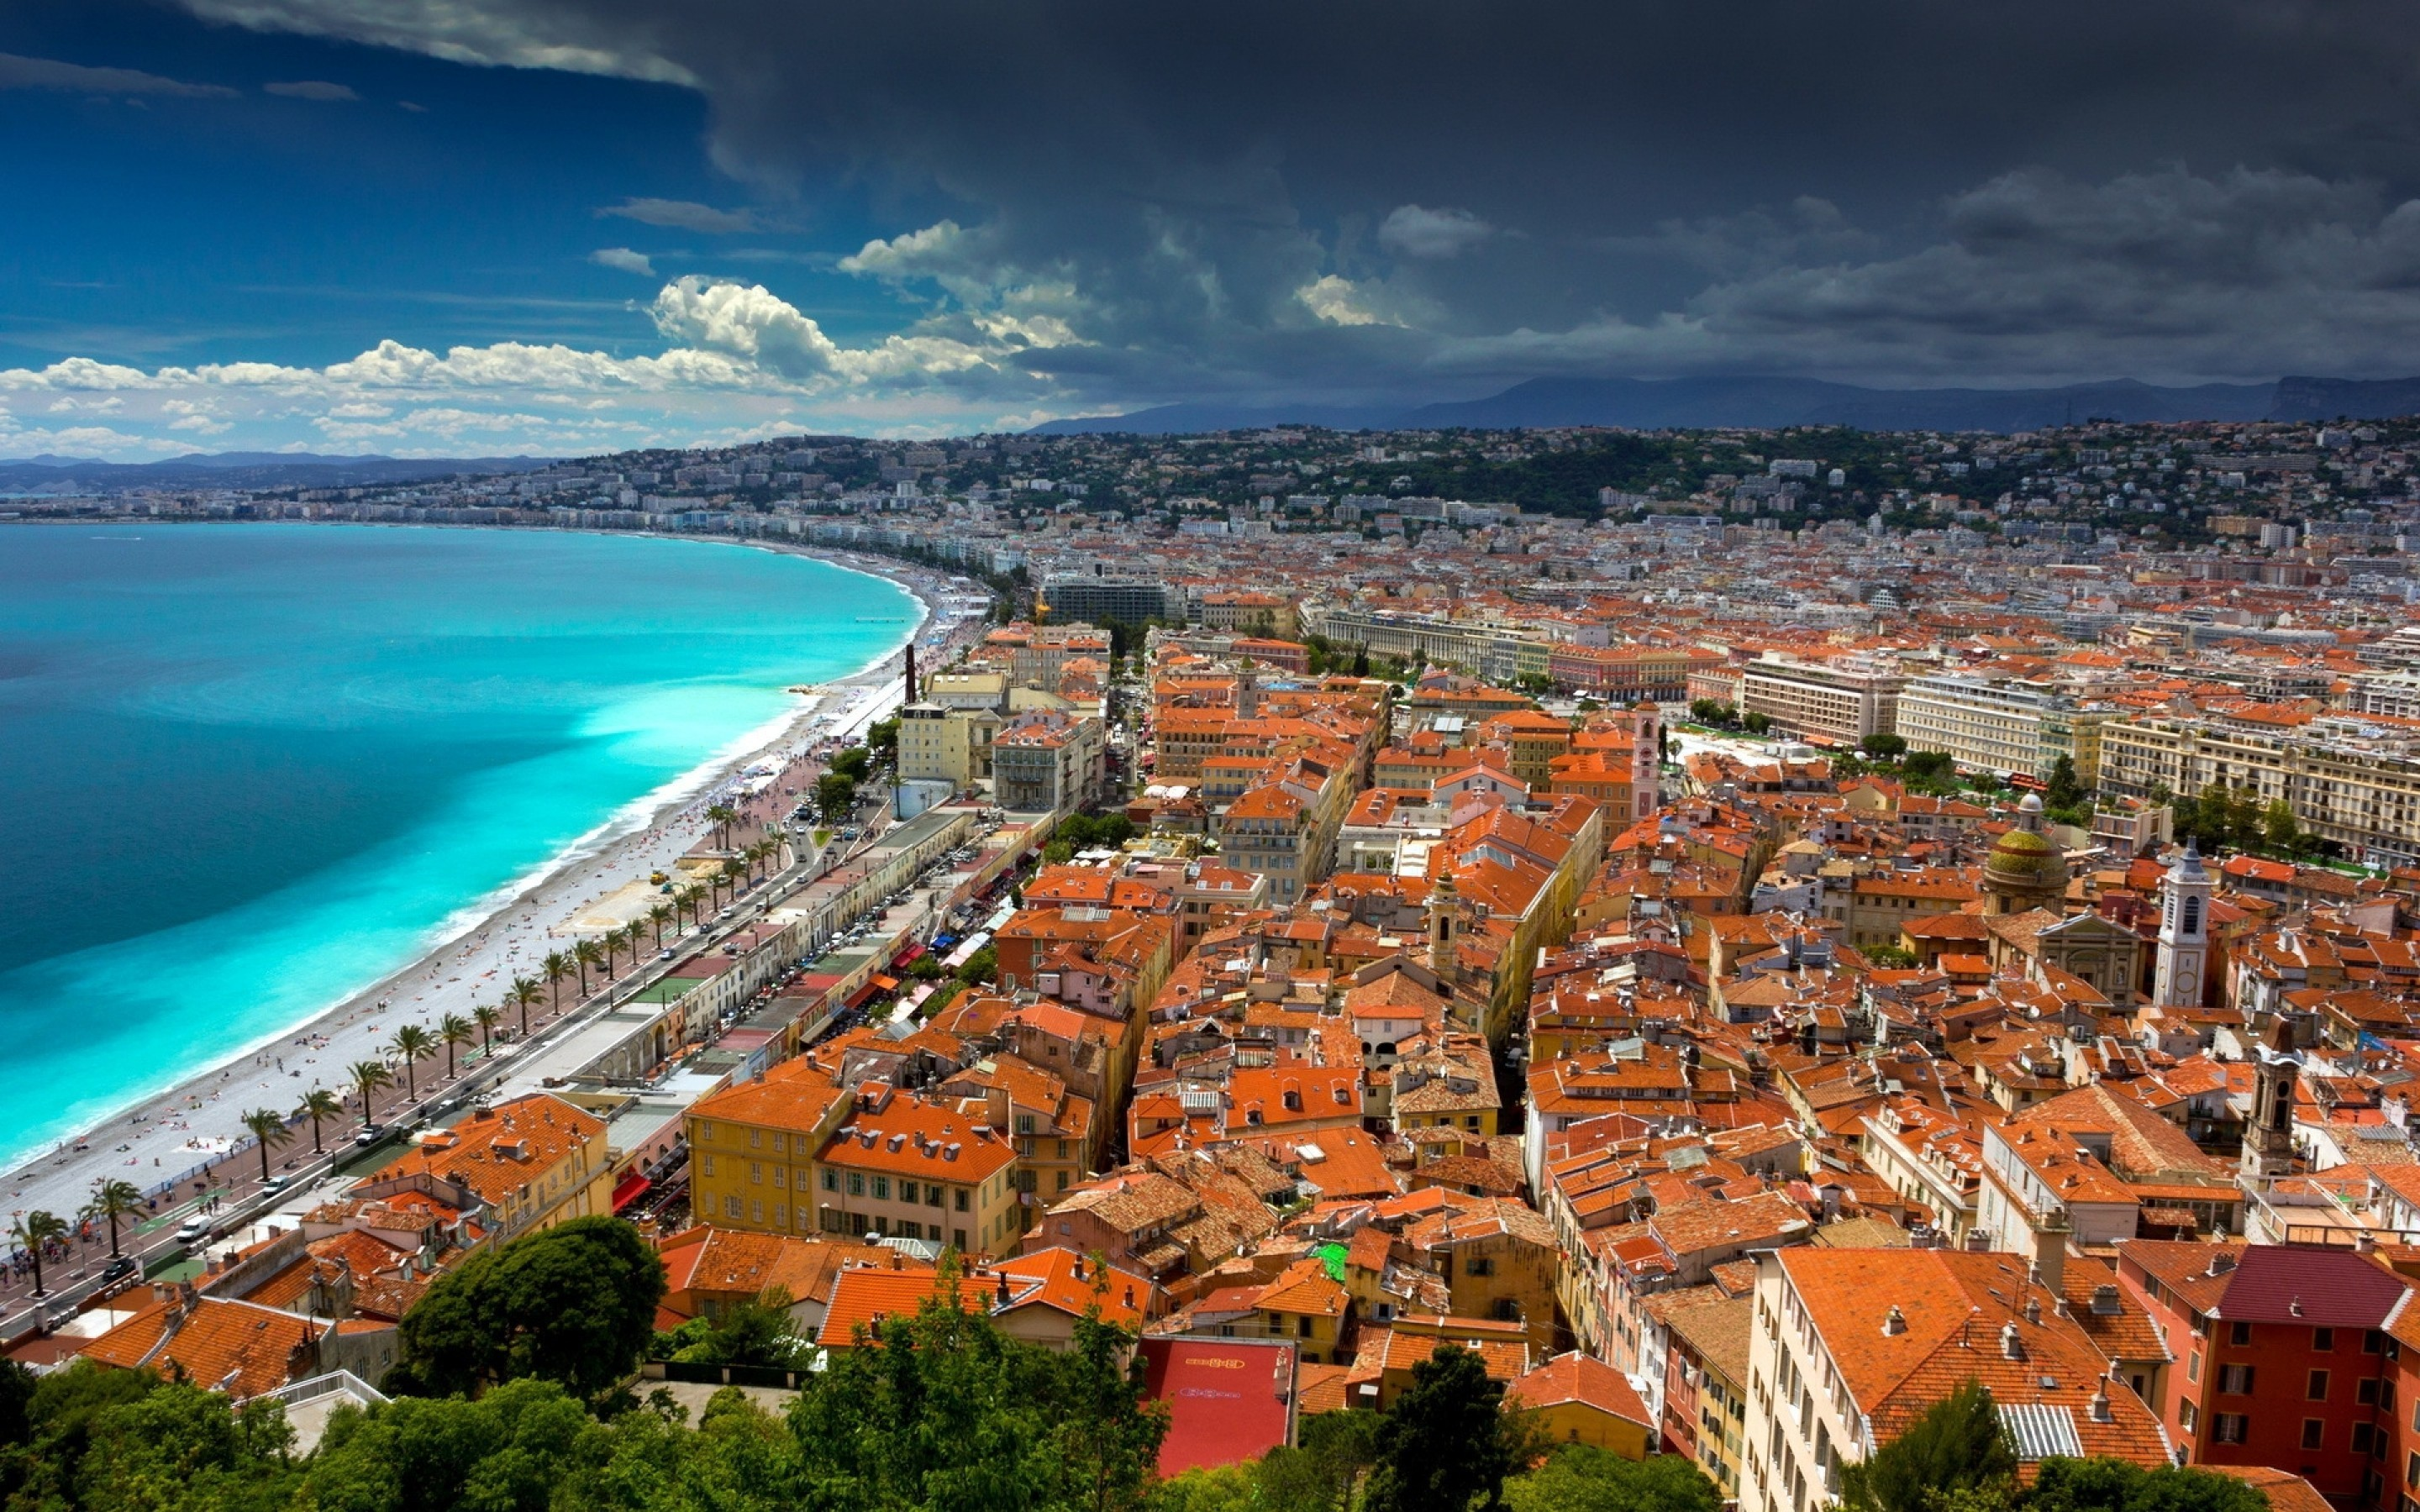 Res: 2880x1800, France, Nice, Mediterranean, Houses, Clouds